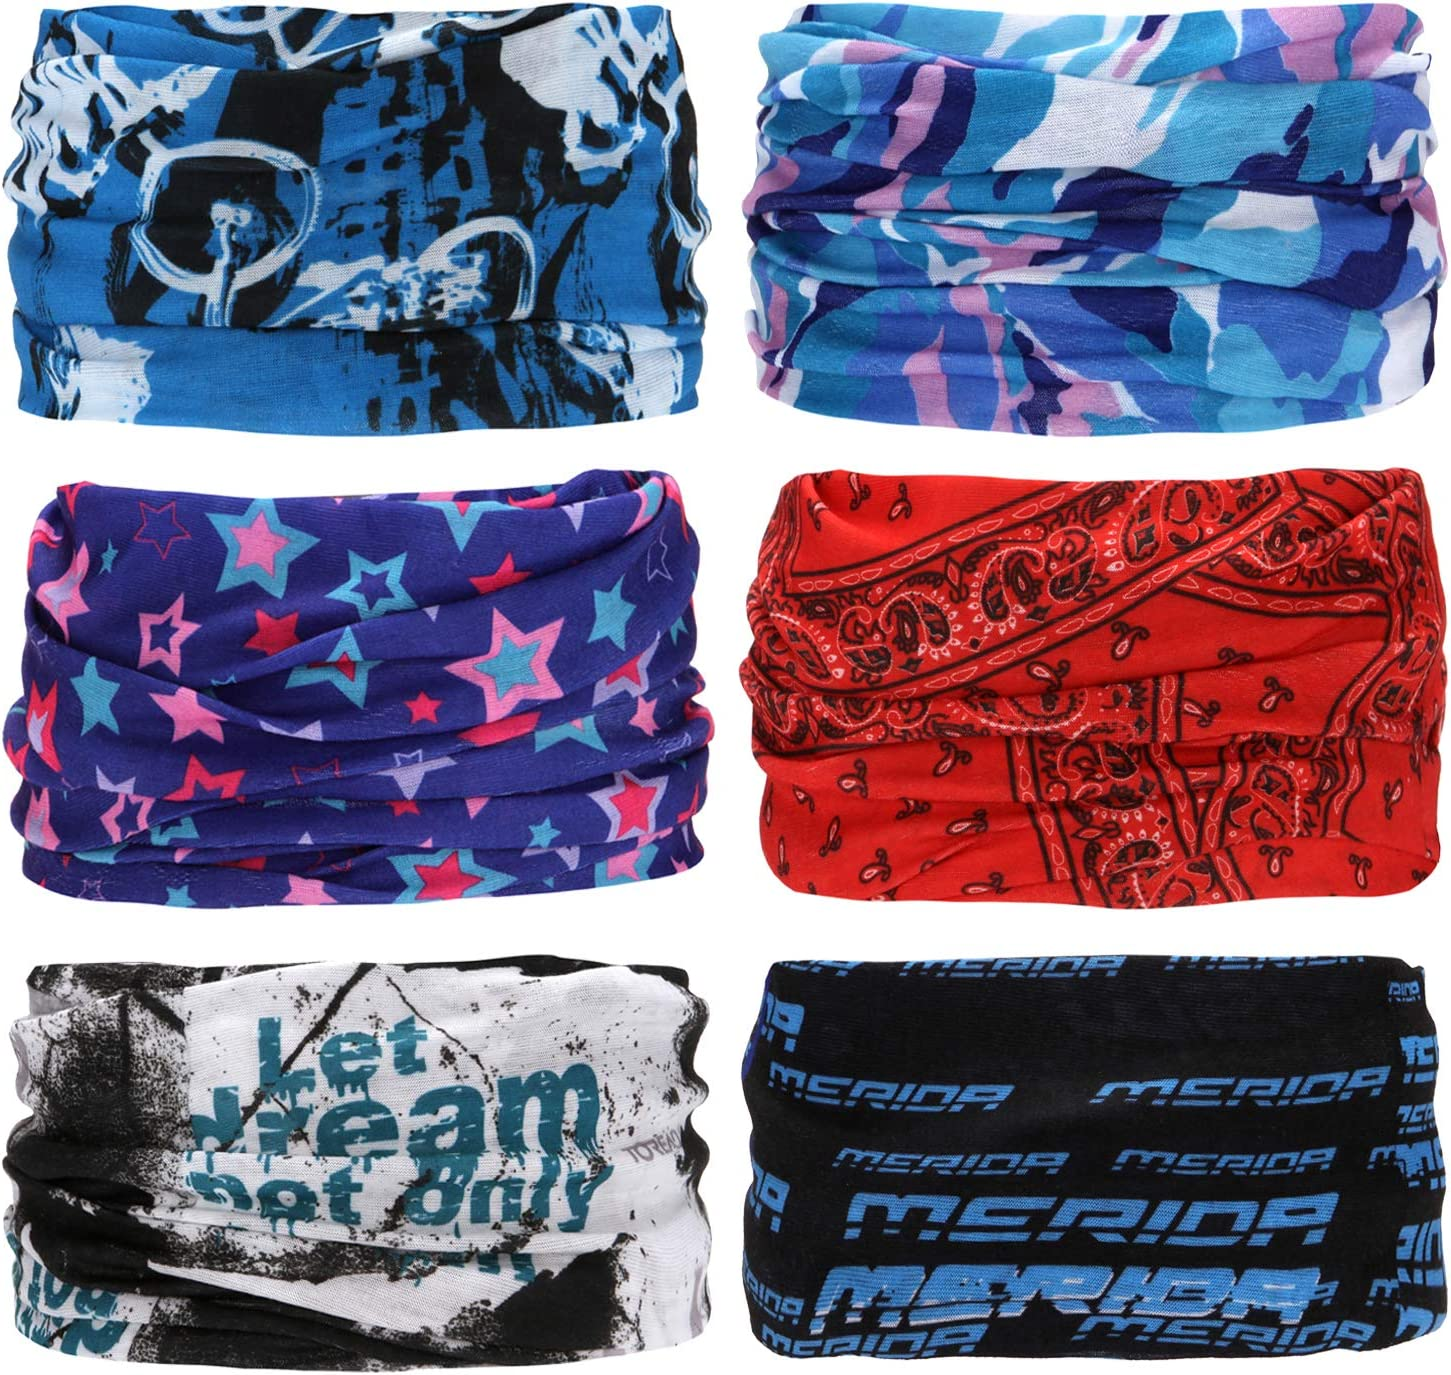 Can be Used as Neck Gaiters Sea Team 6-pack Assorted 18 in 1 Versatile Polyester Fiber Sports /& Casual Headwear Bandannas Balaclavas Masks /& More